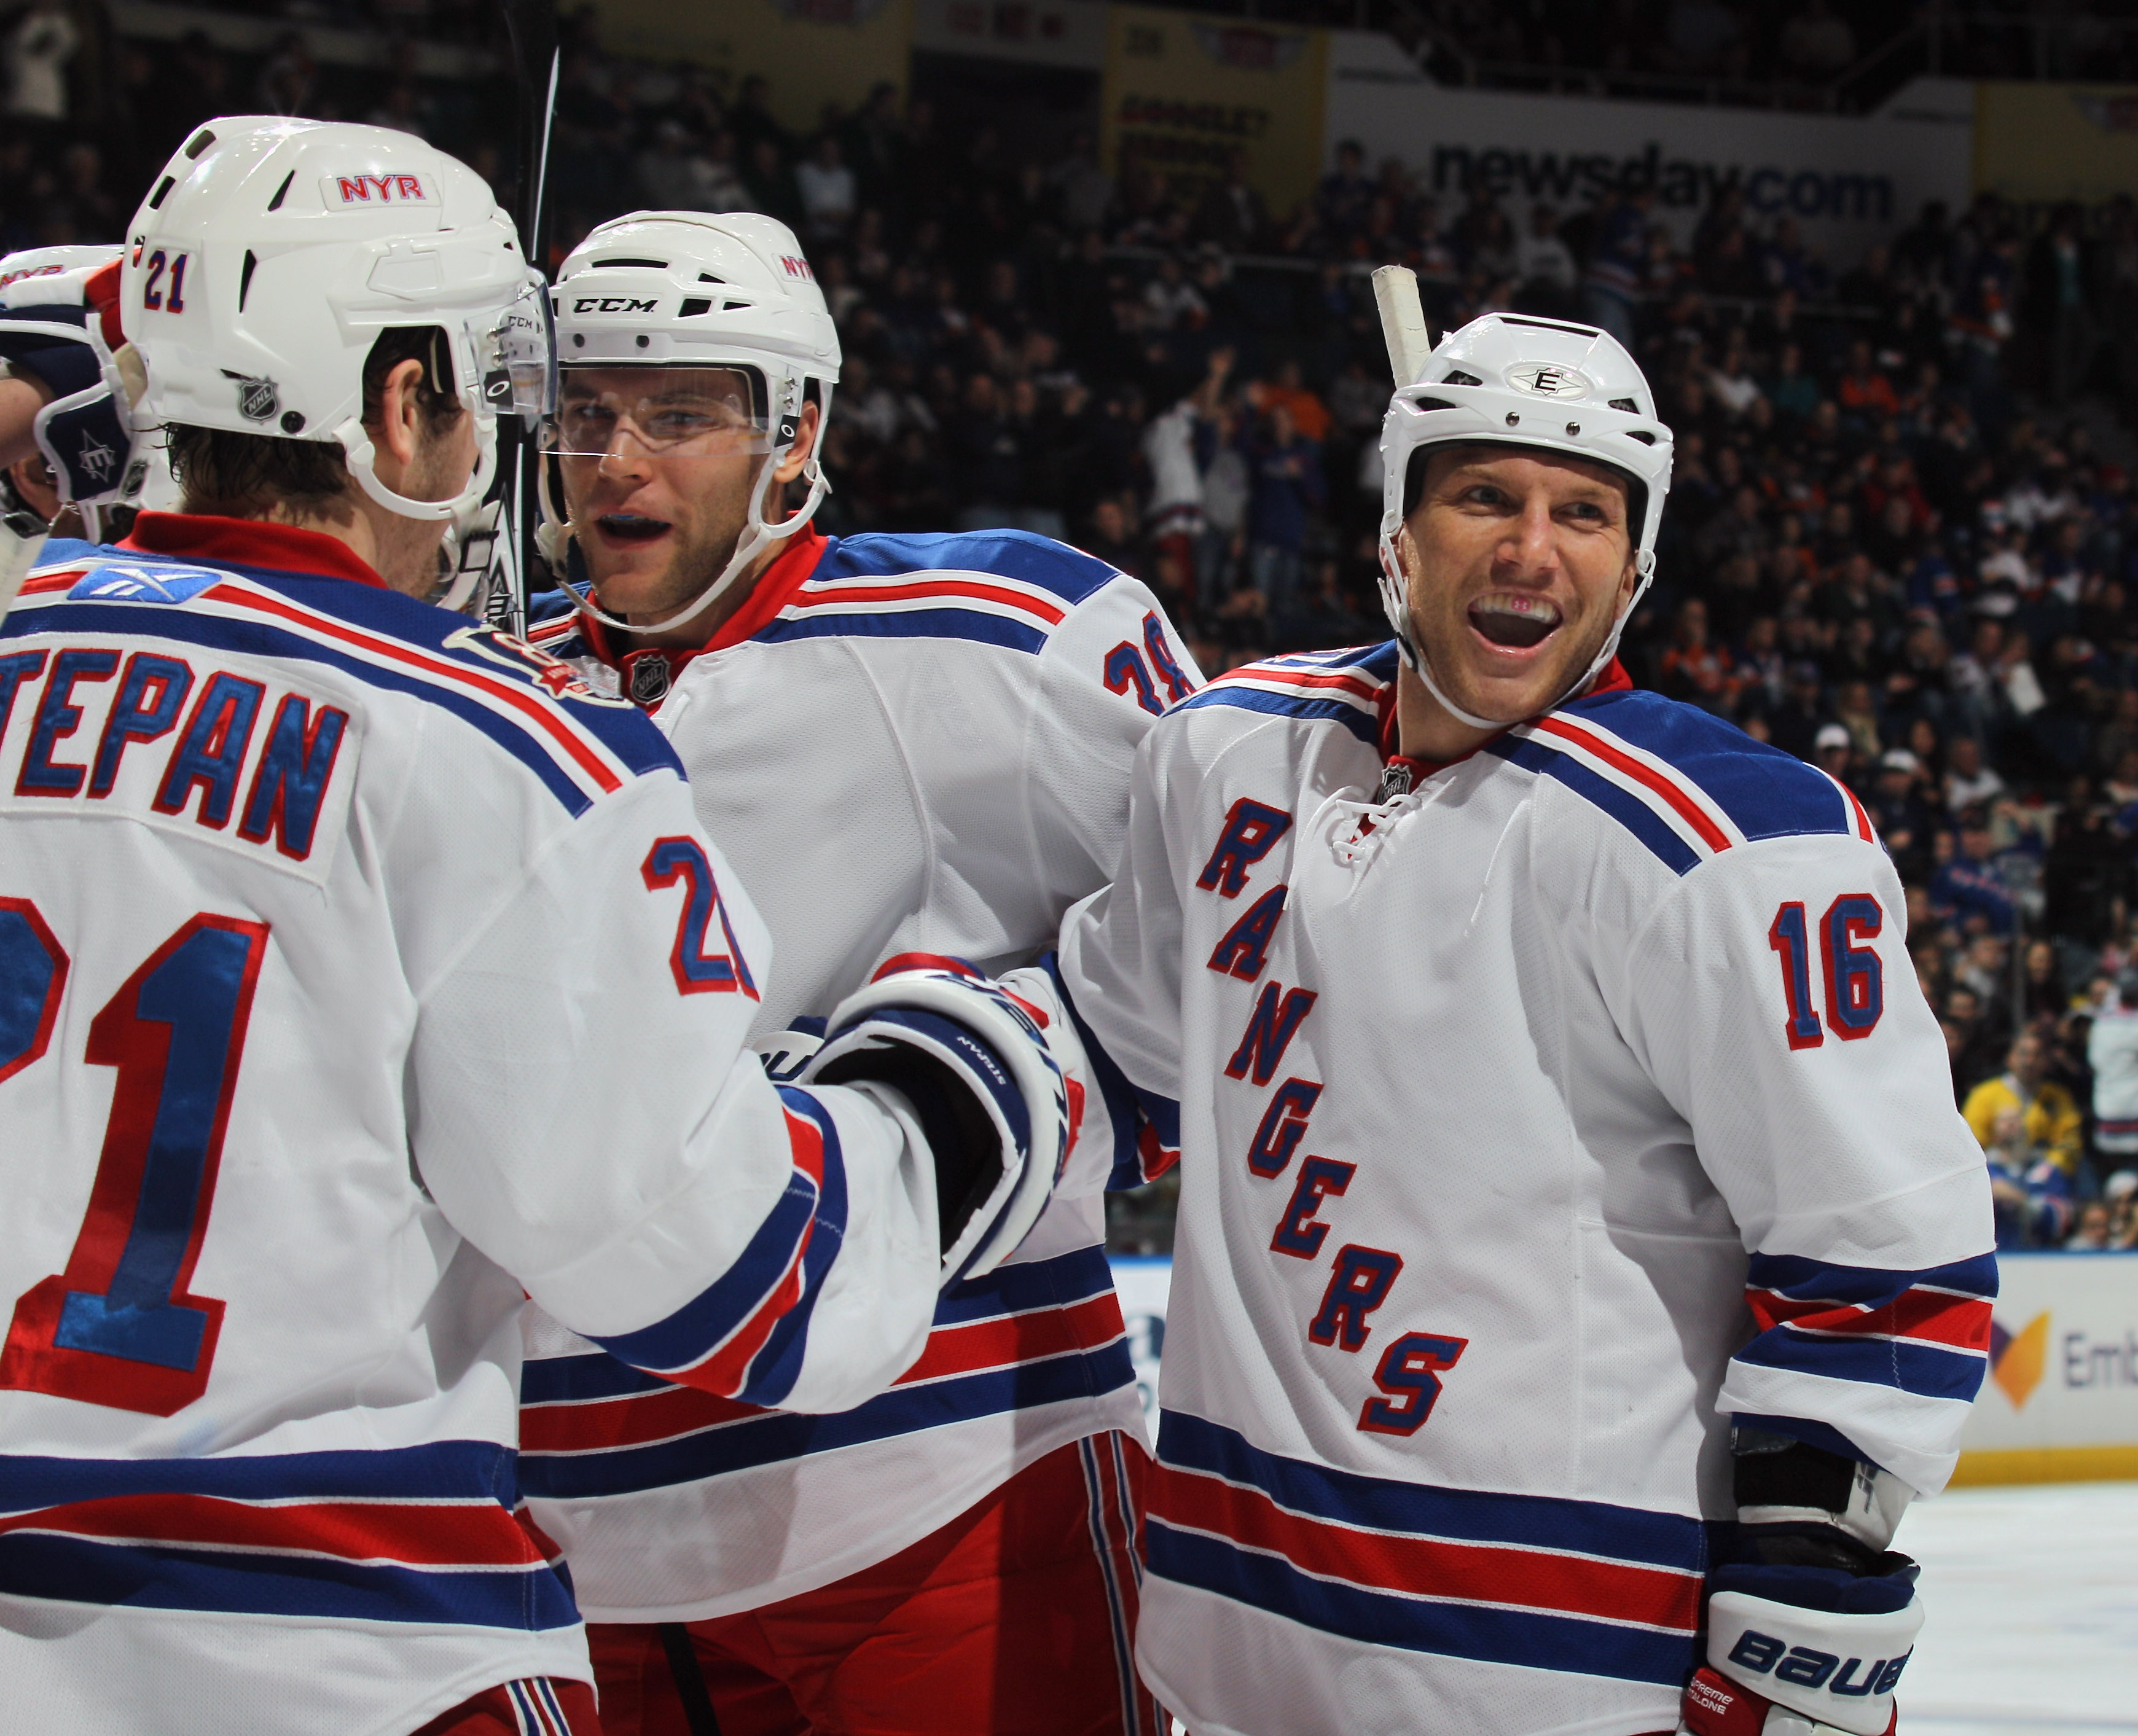 UNIONDALE, NY - DECEMBER 02: Sean Avery #16 of the New York Rangers celebrates a third period goal by Marian Gaborik #10 against the New York Islanders at the Nassau Coliseum on December 2, 2010 in Uniondale, New York. The Rangers defeated the Islanders 6